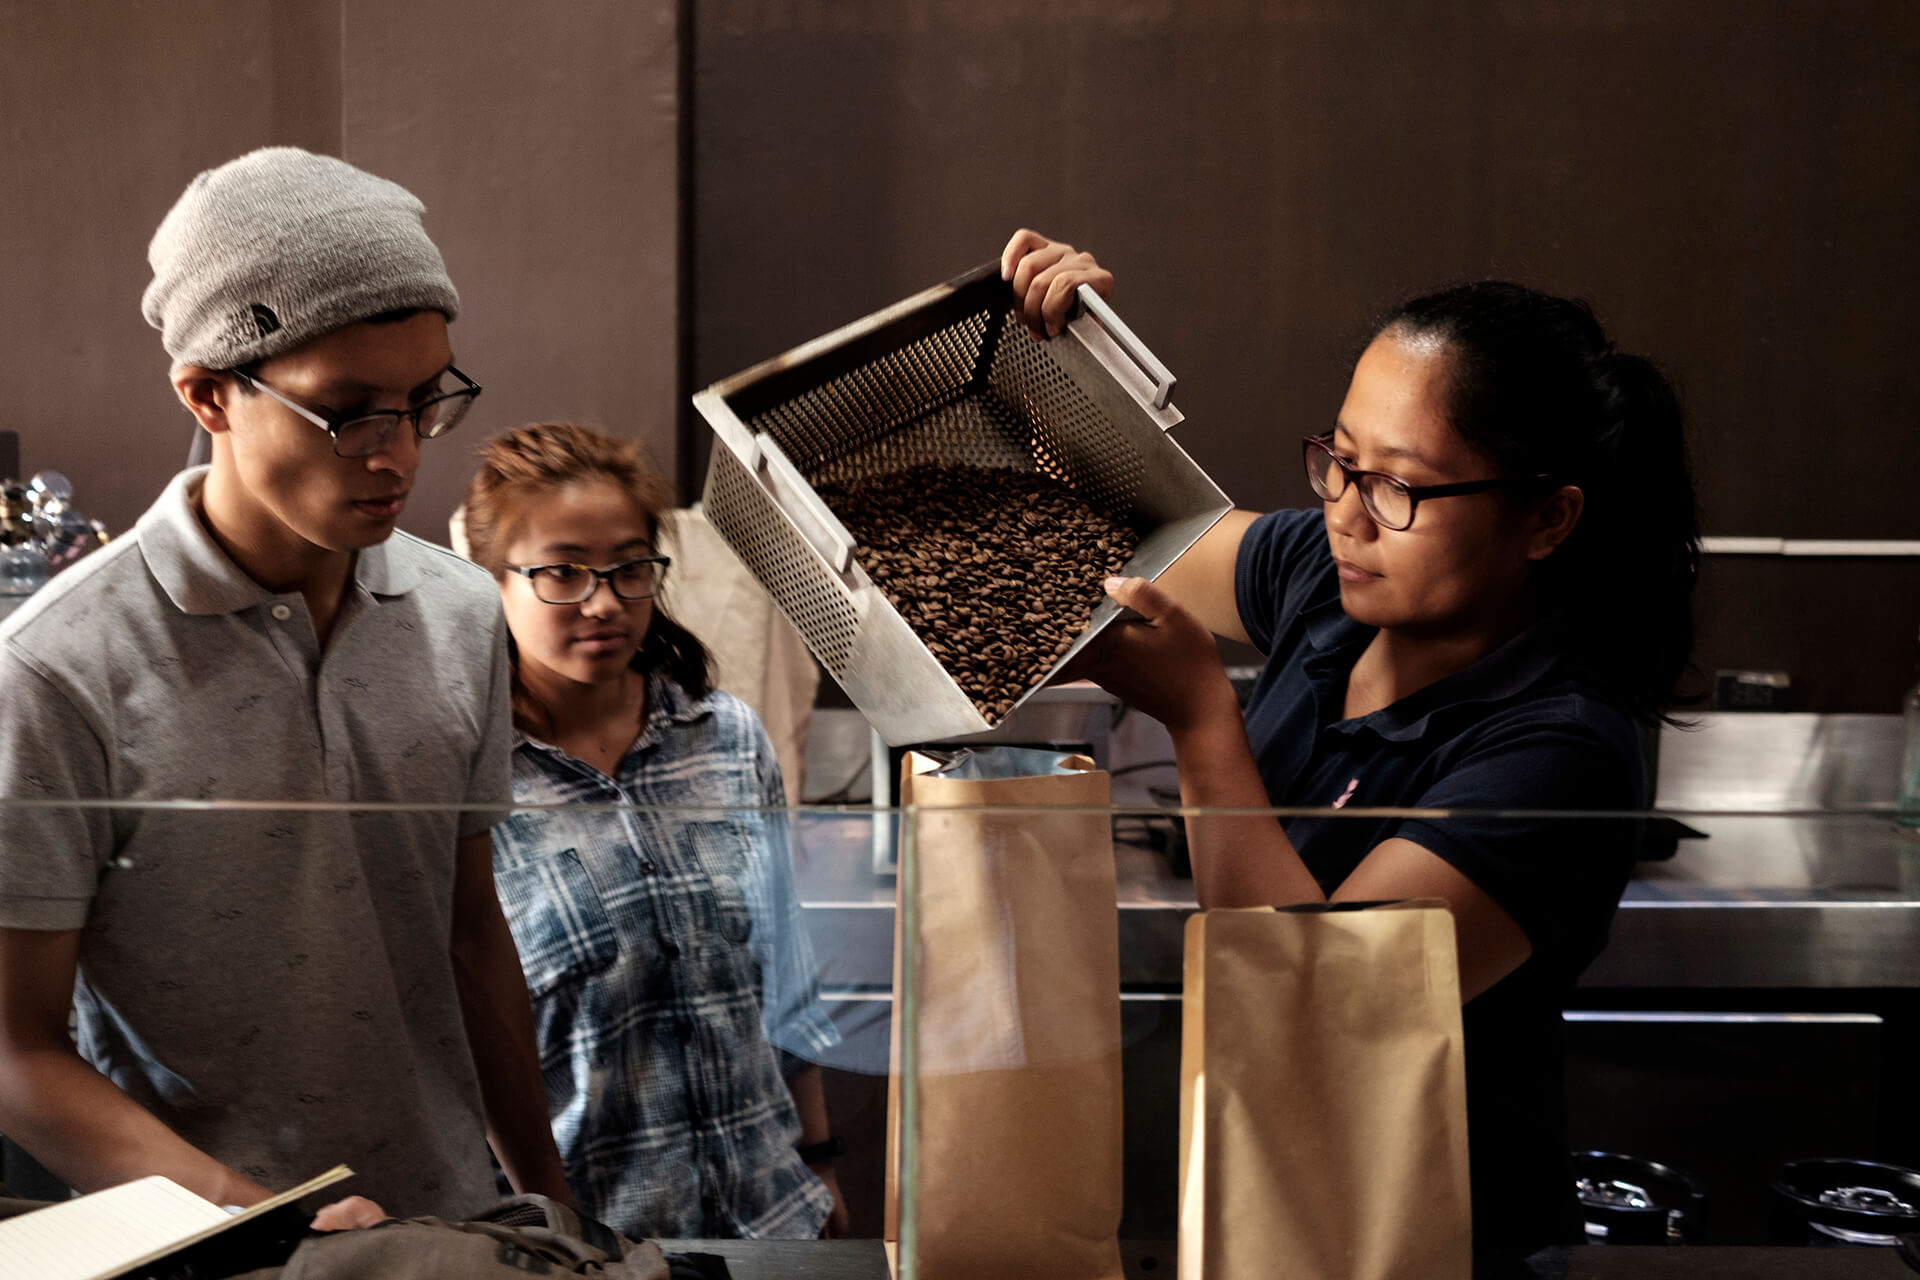 Tere Domine roasts beans at EDSA Beverage Design Group in Quezon City.